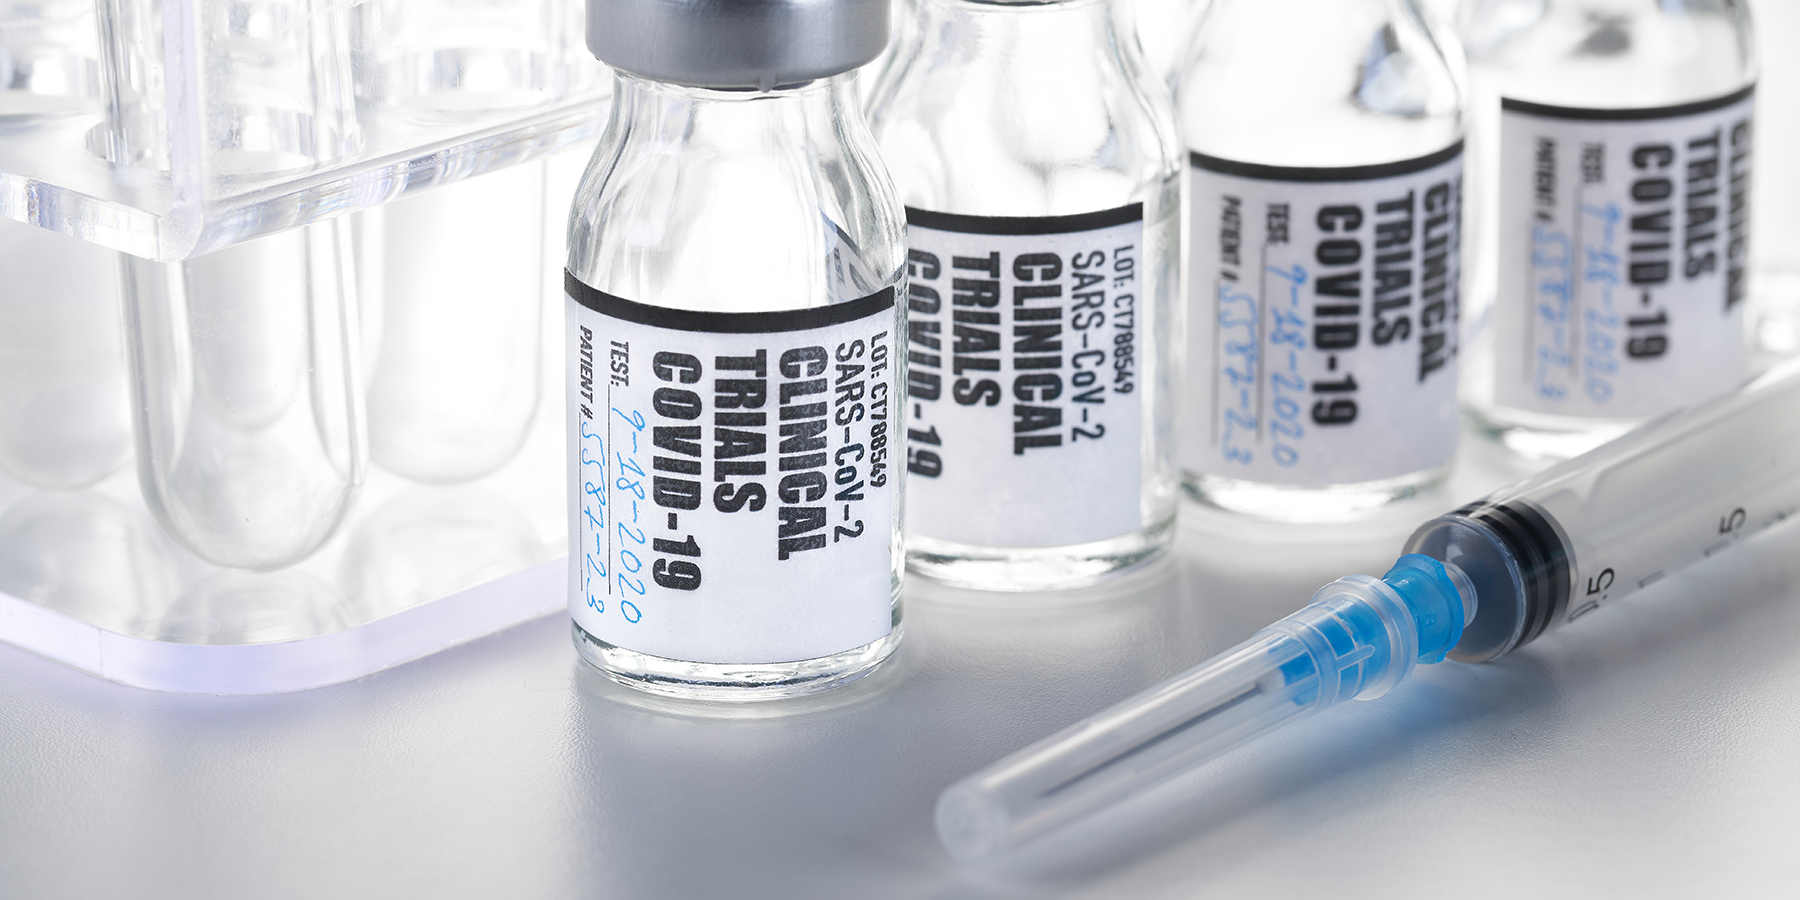 Phase 3 Clinical Trial of Possible COVID-19 Vaccine Begins